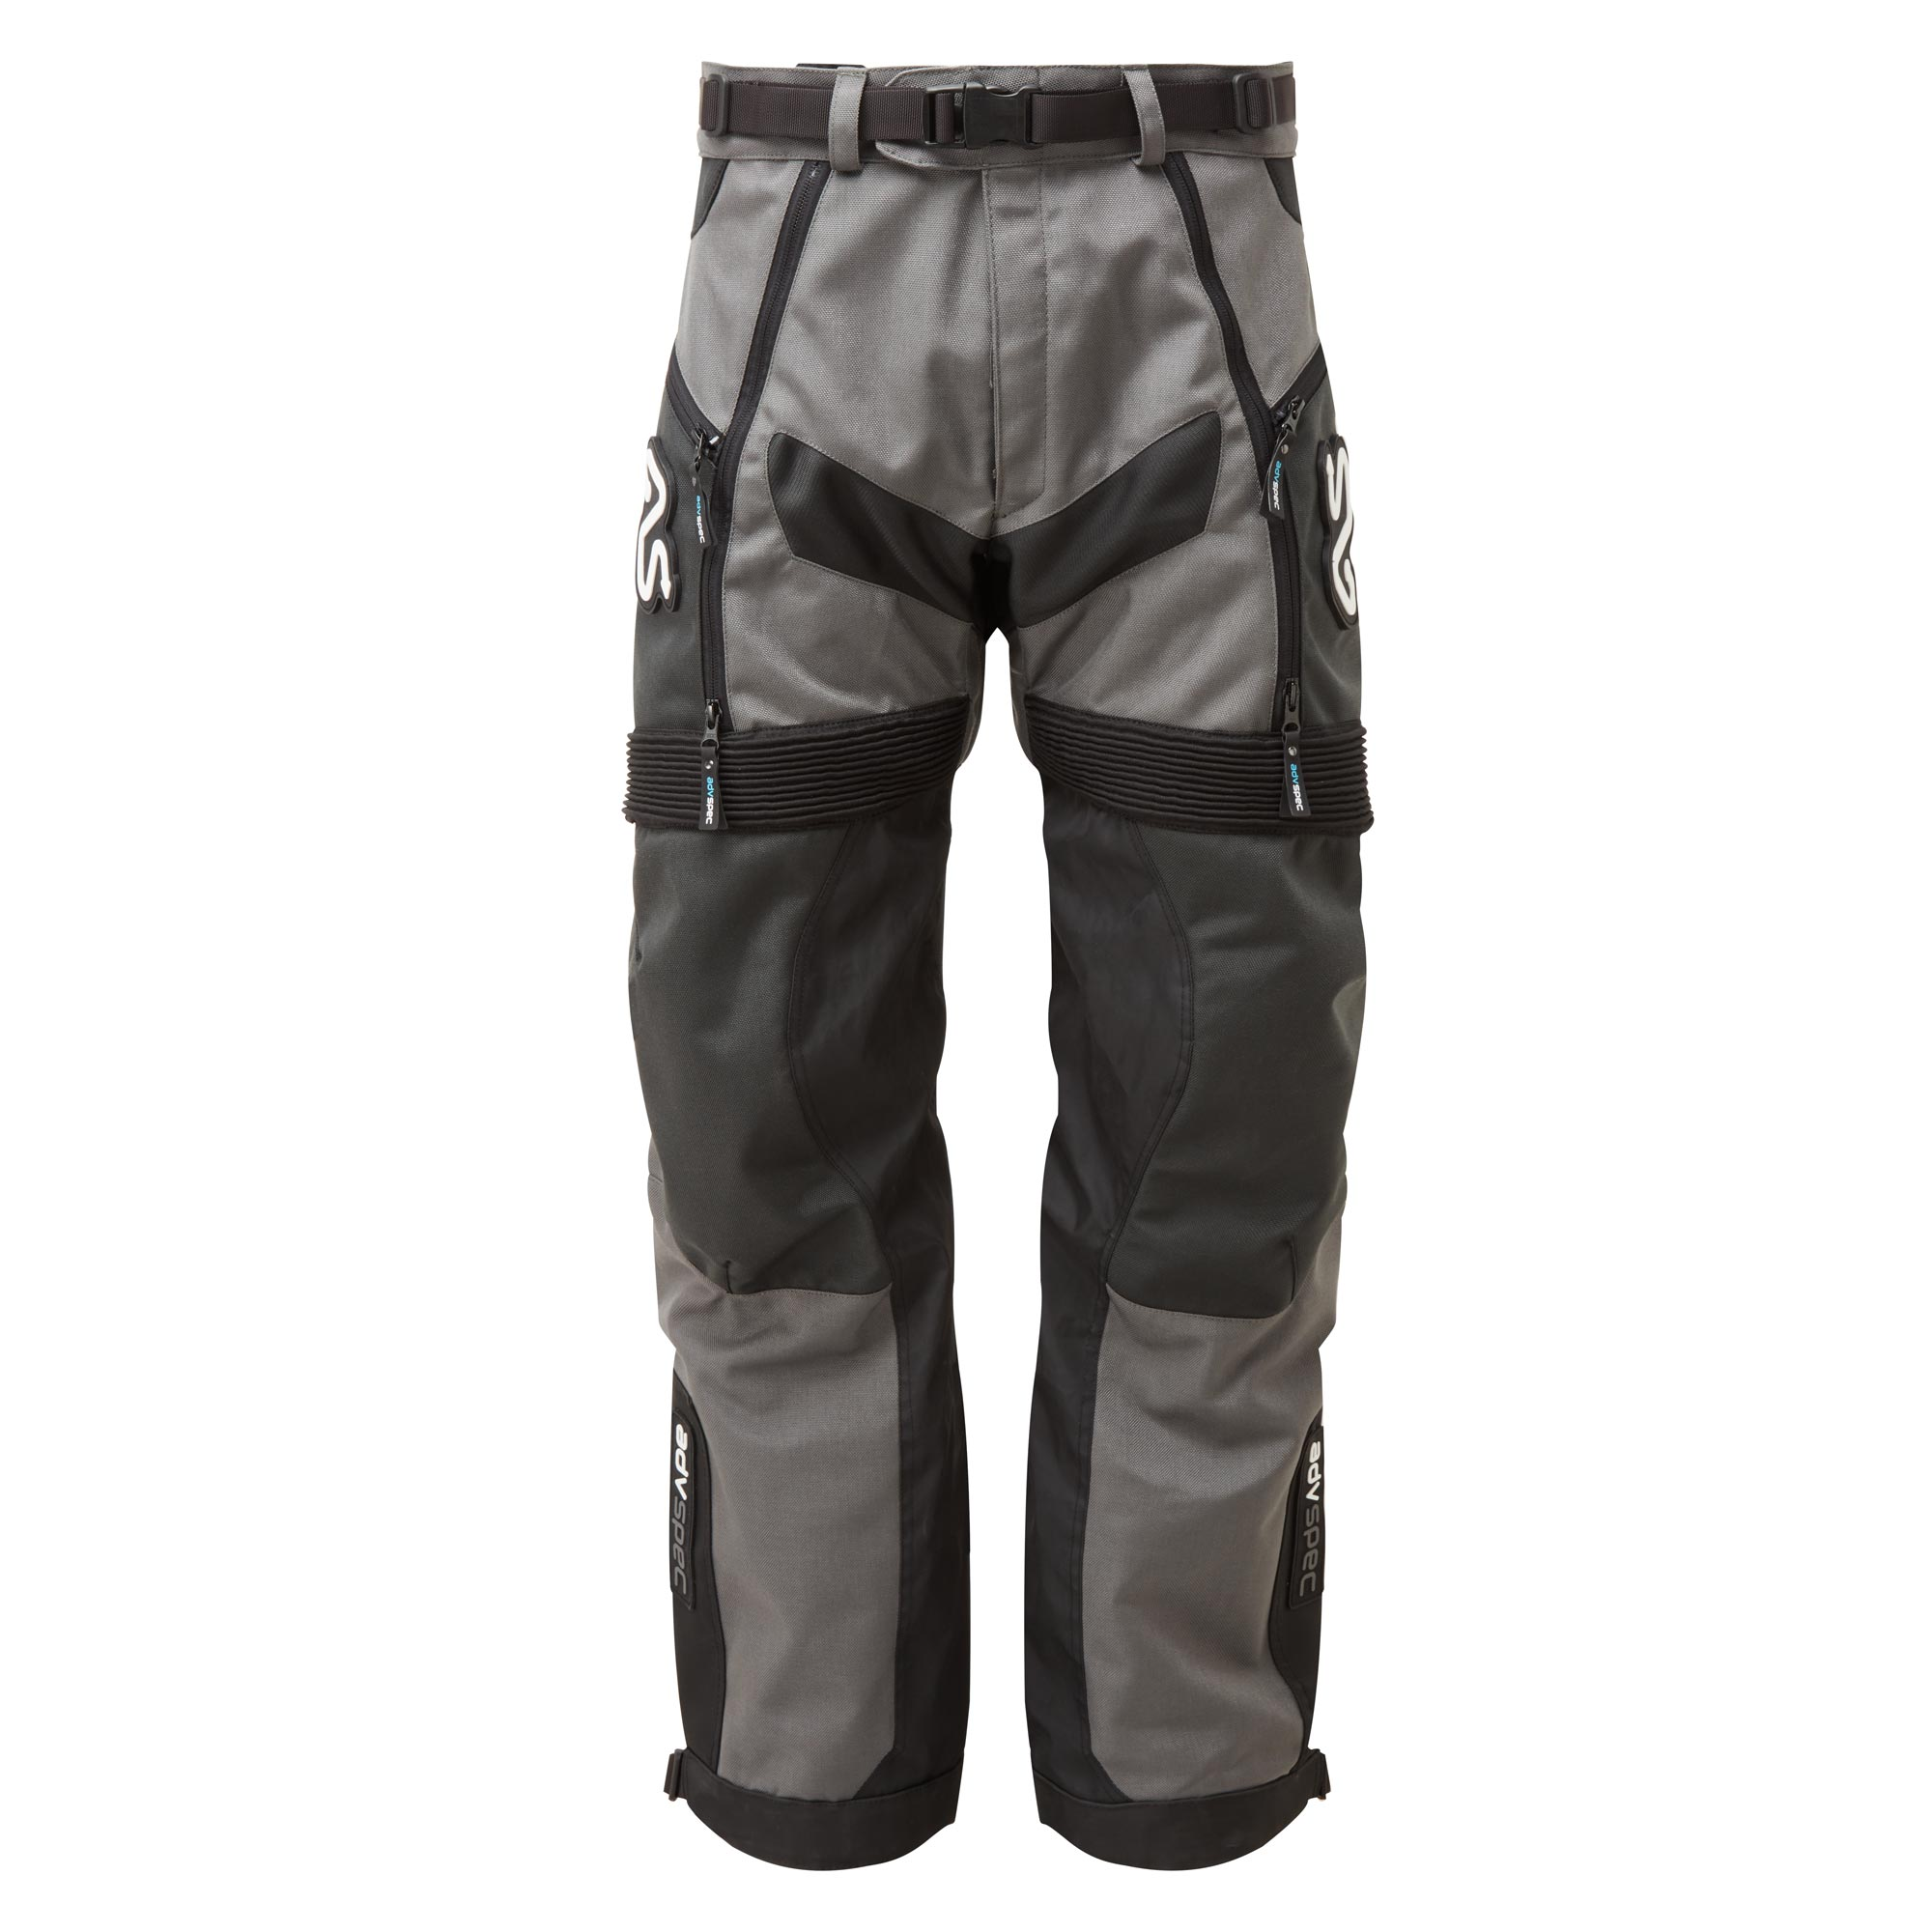 Adventure Spec Mongolia Pants